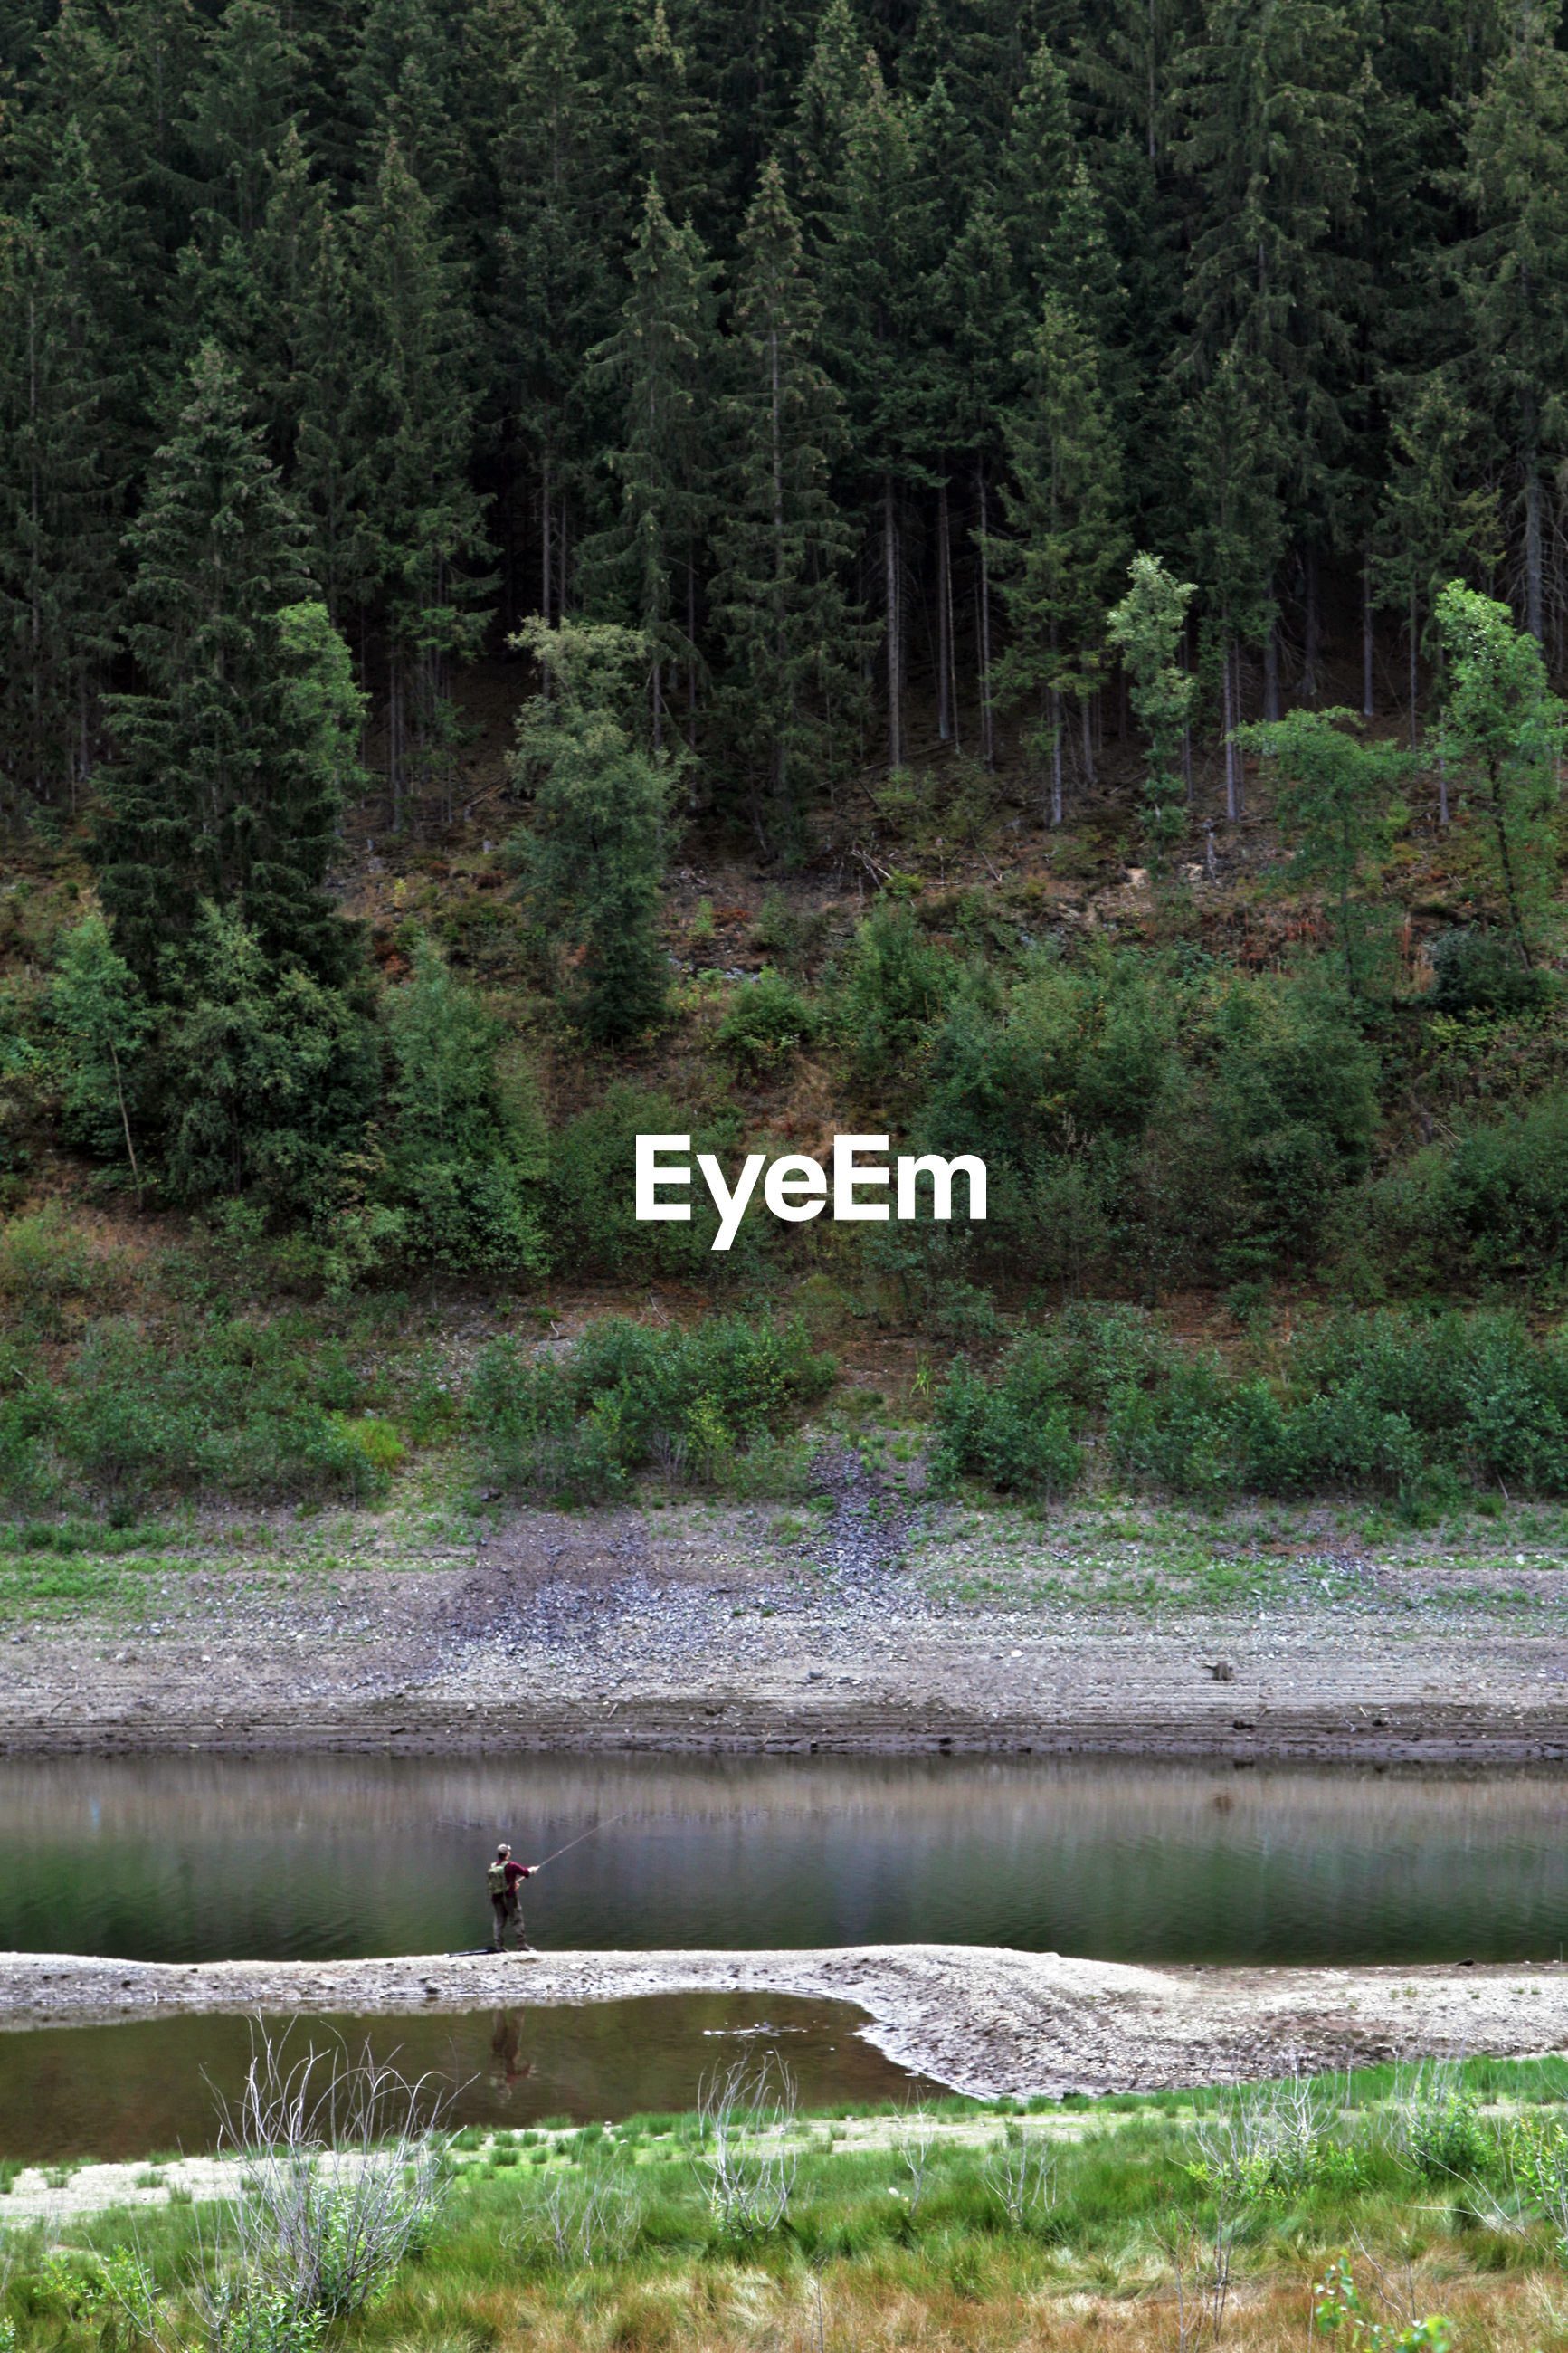 View of a fisherman in front of stream amidst trees in forest